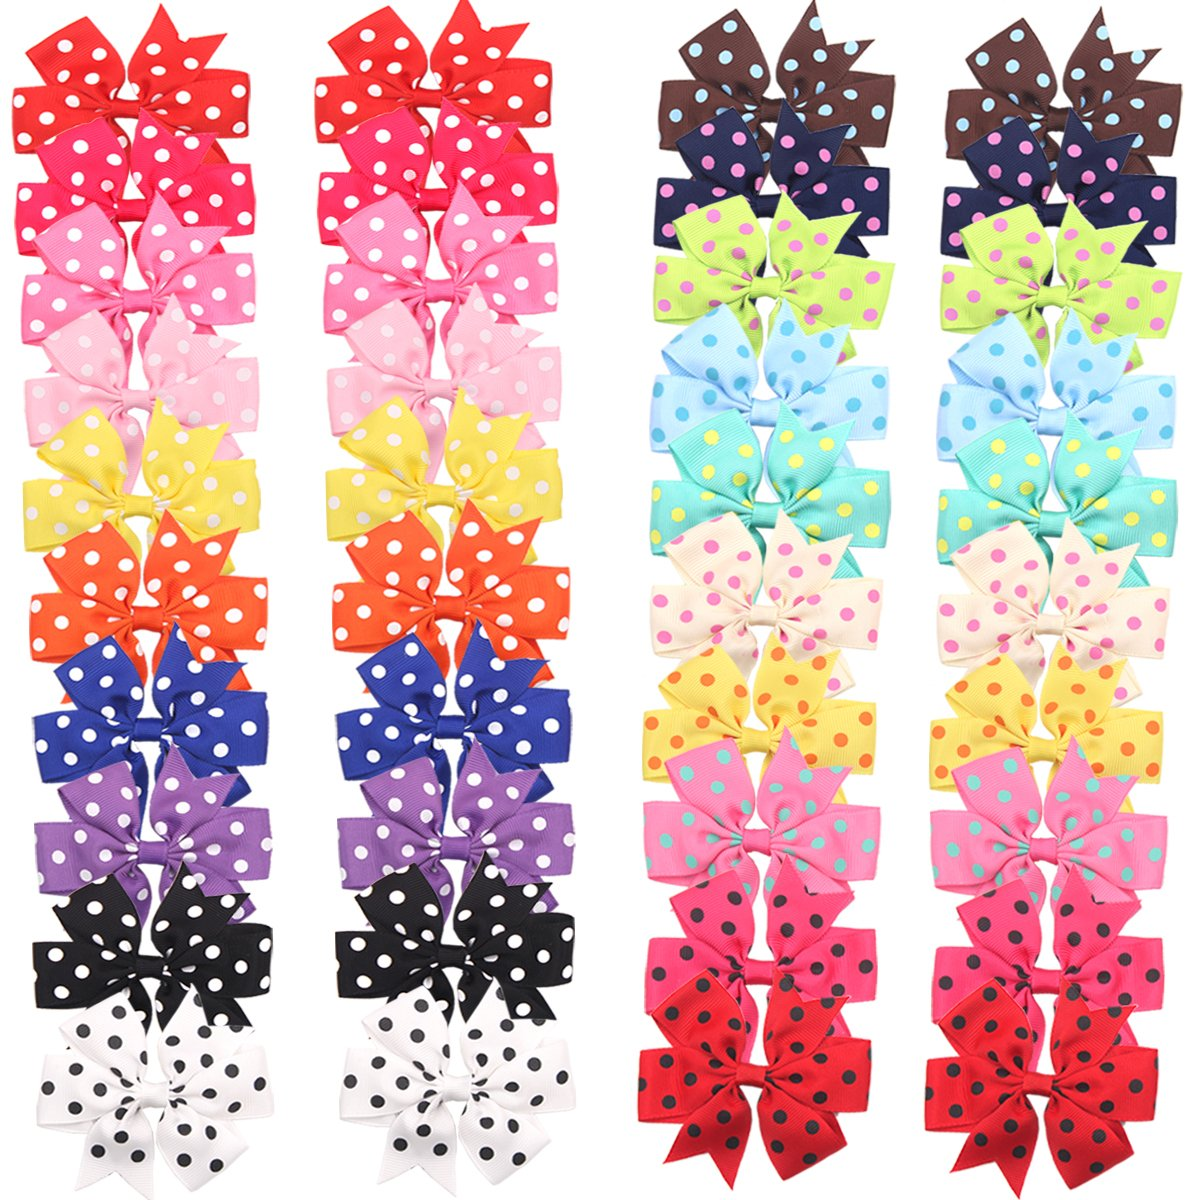 a11bf0be7 About the product Cellot boutique Hair bow size:3 inch ;Made from 1 inch  grosgrain Polka Dot ribbon; Attached with alligator clips. Set of 20  colors; ...